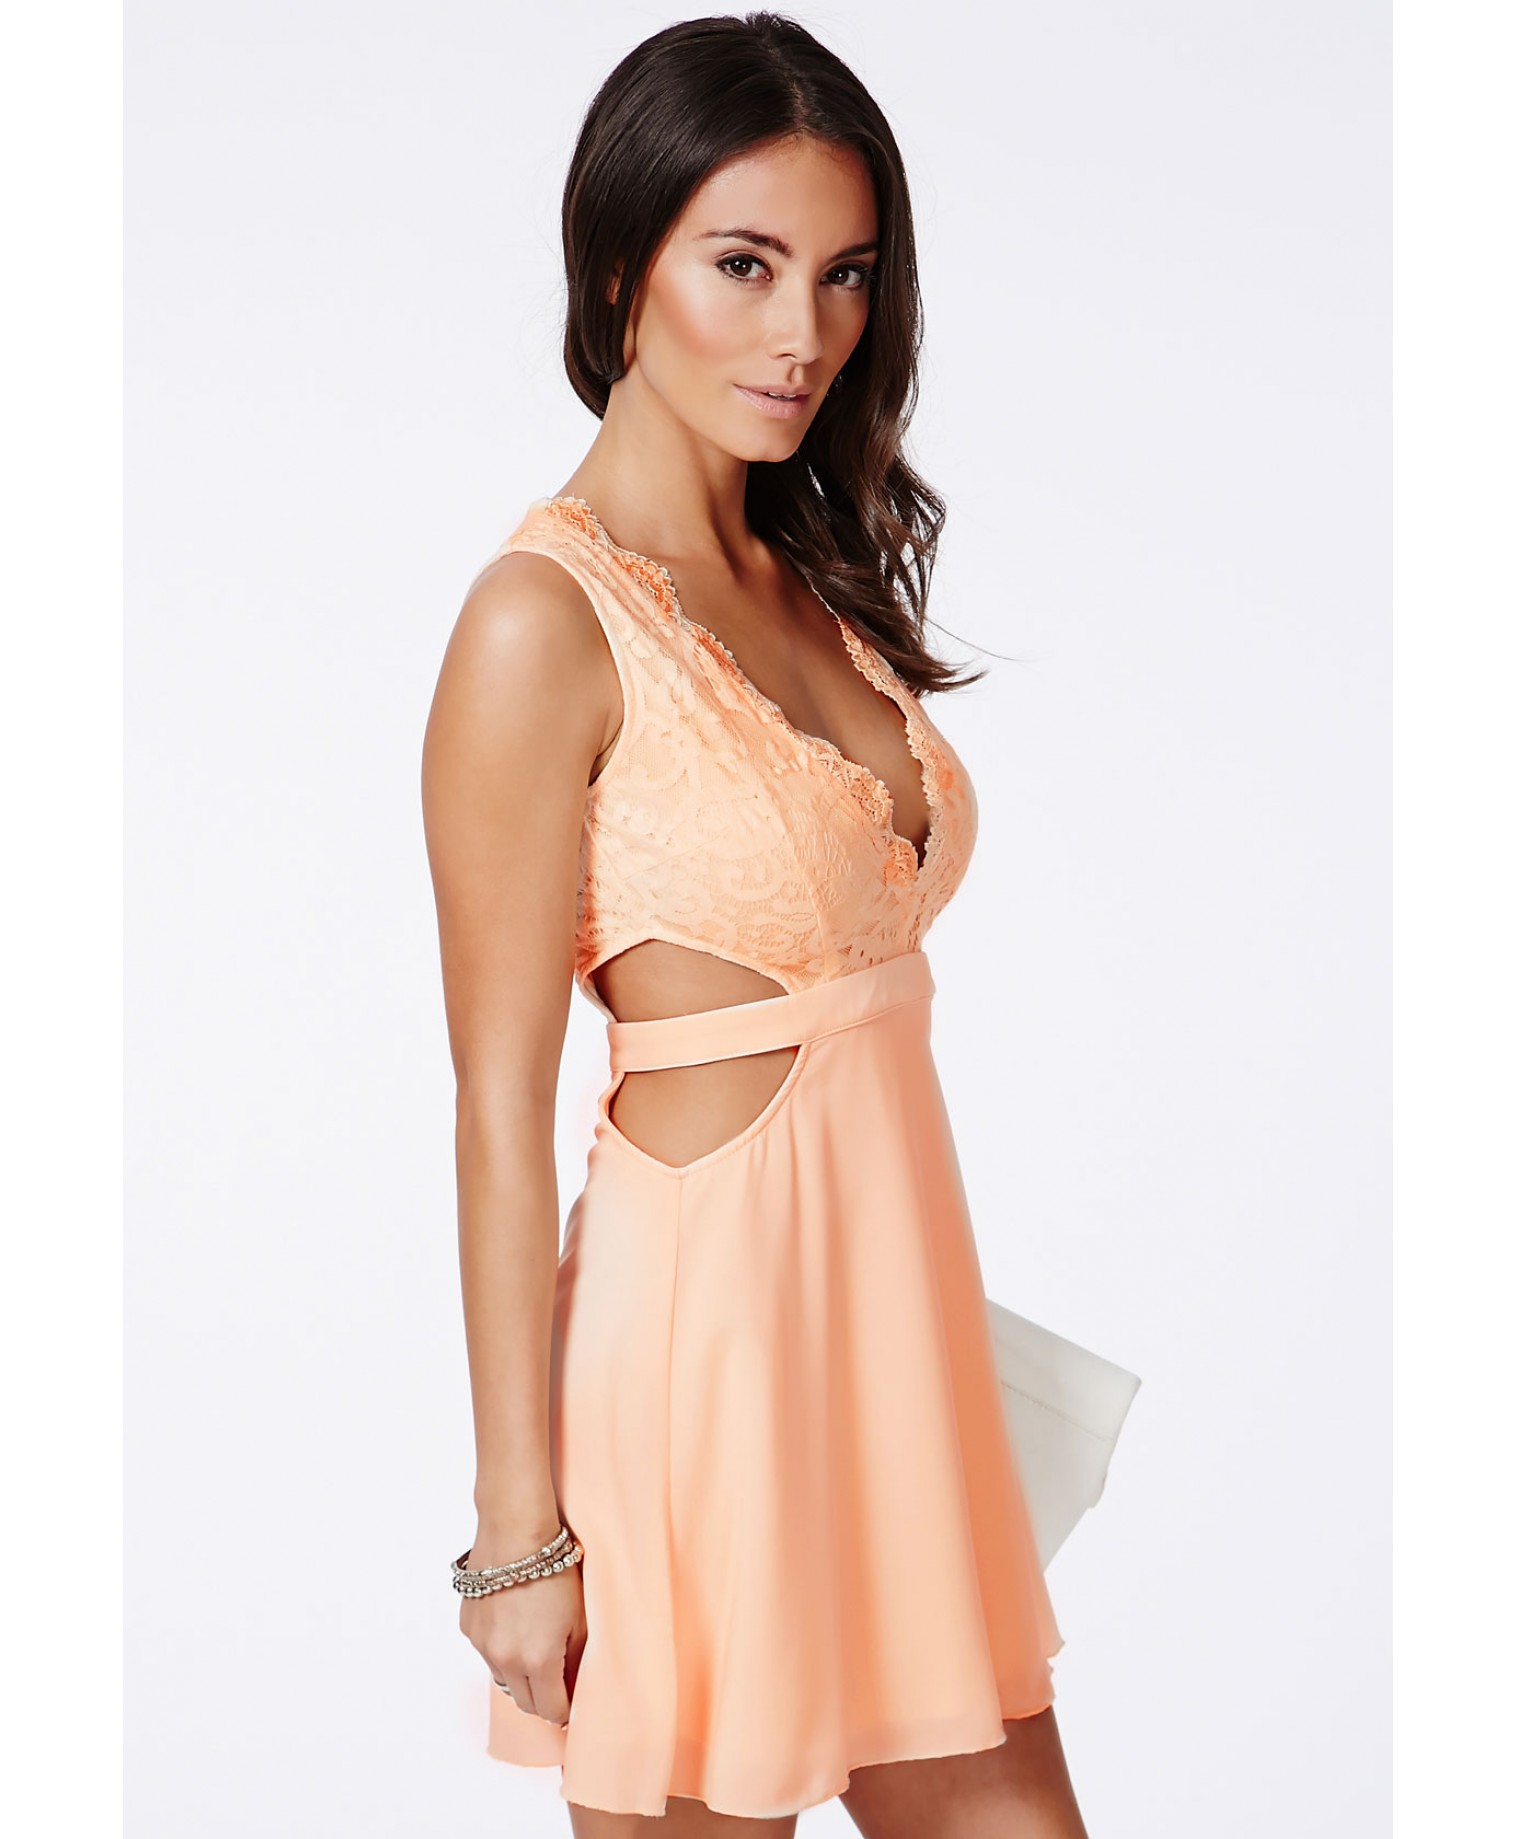 48e34491cc Missguided Roksy Nude Lace Plunge Cut Out Dress in Natural - Lyst